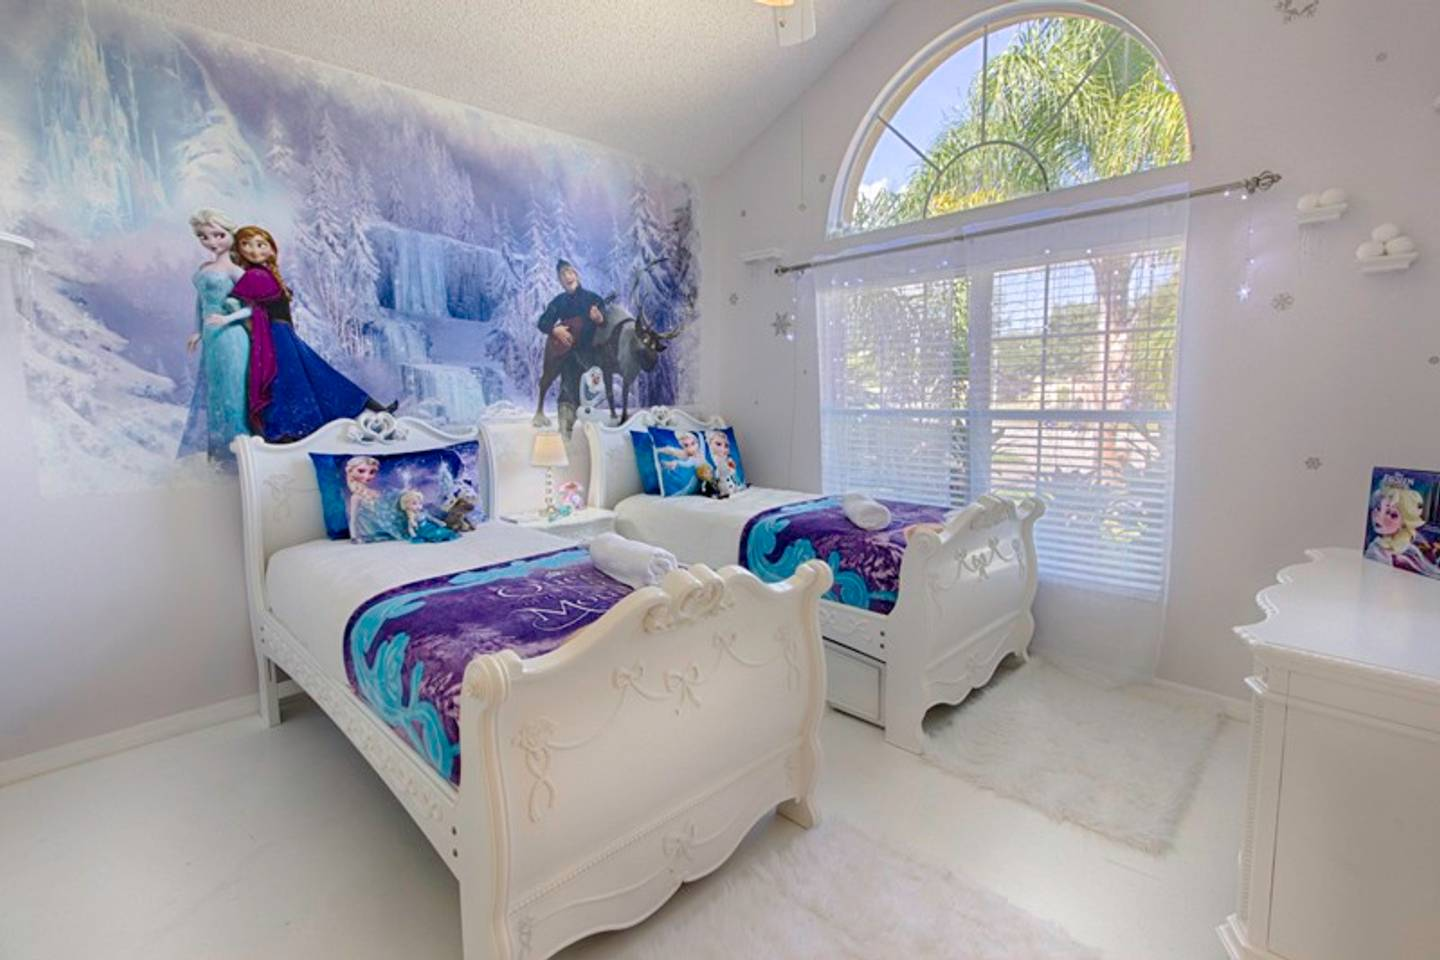 Do You Have a Kid That Would Fall In Love With a Frozen Themed Room? Many AirBnb Homes Near Disney World Feature Themed Rooms